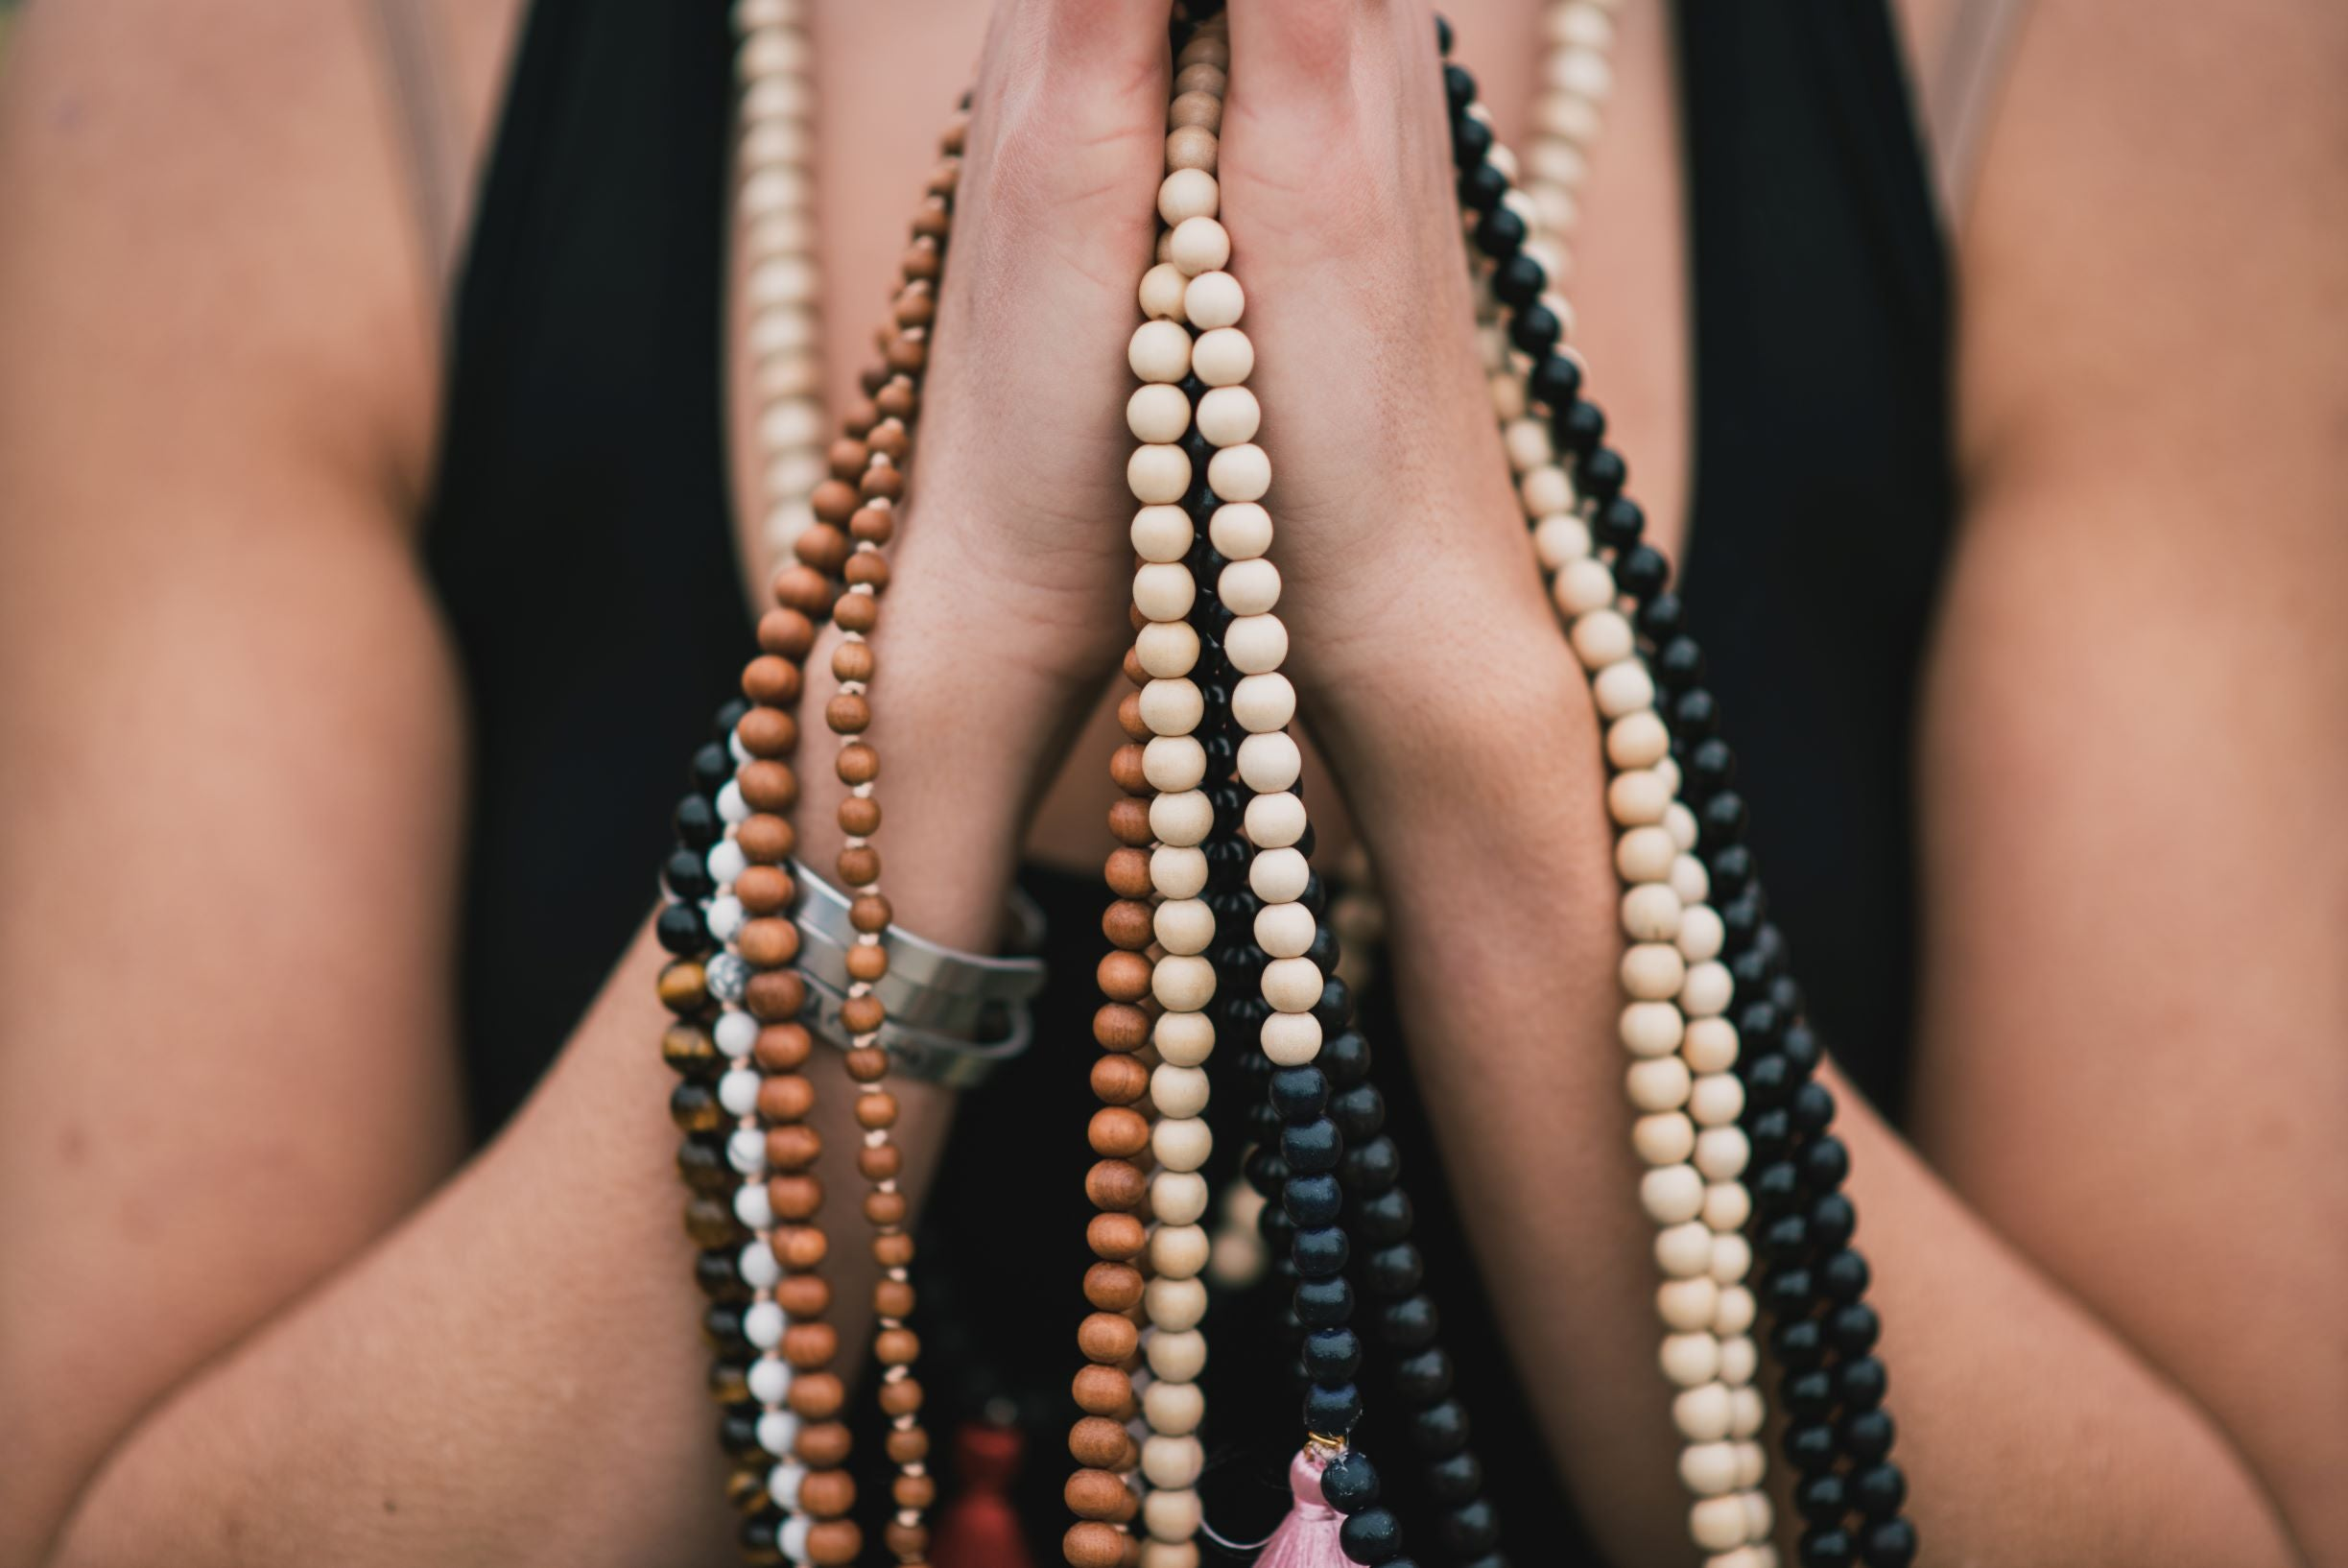 Hands held in prayer while holding handmade mala necklaces, meditating to cleanse the crystals.